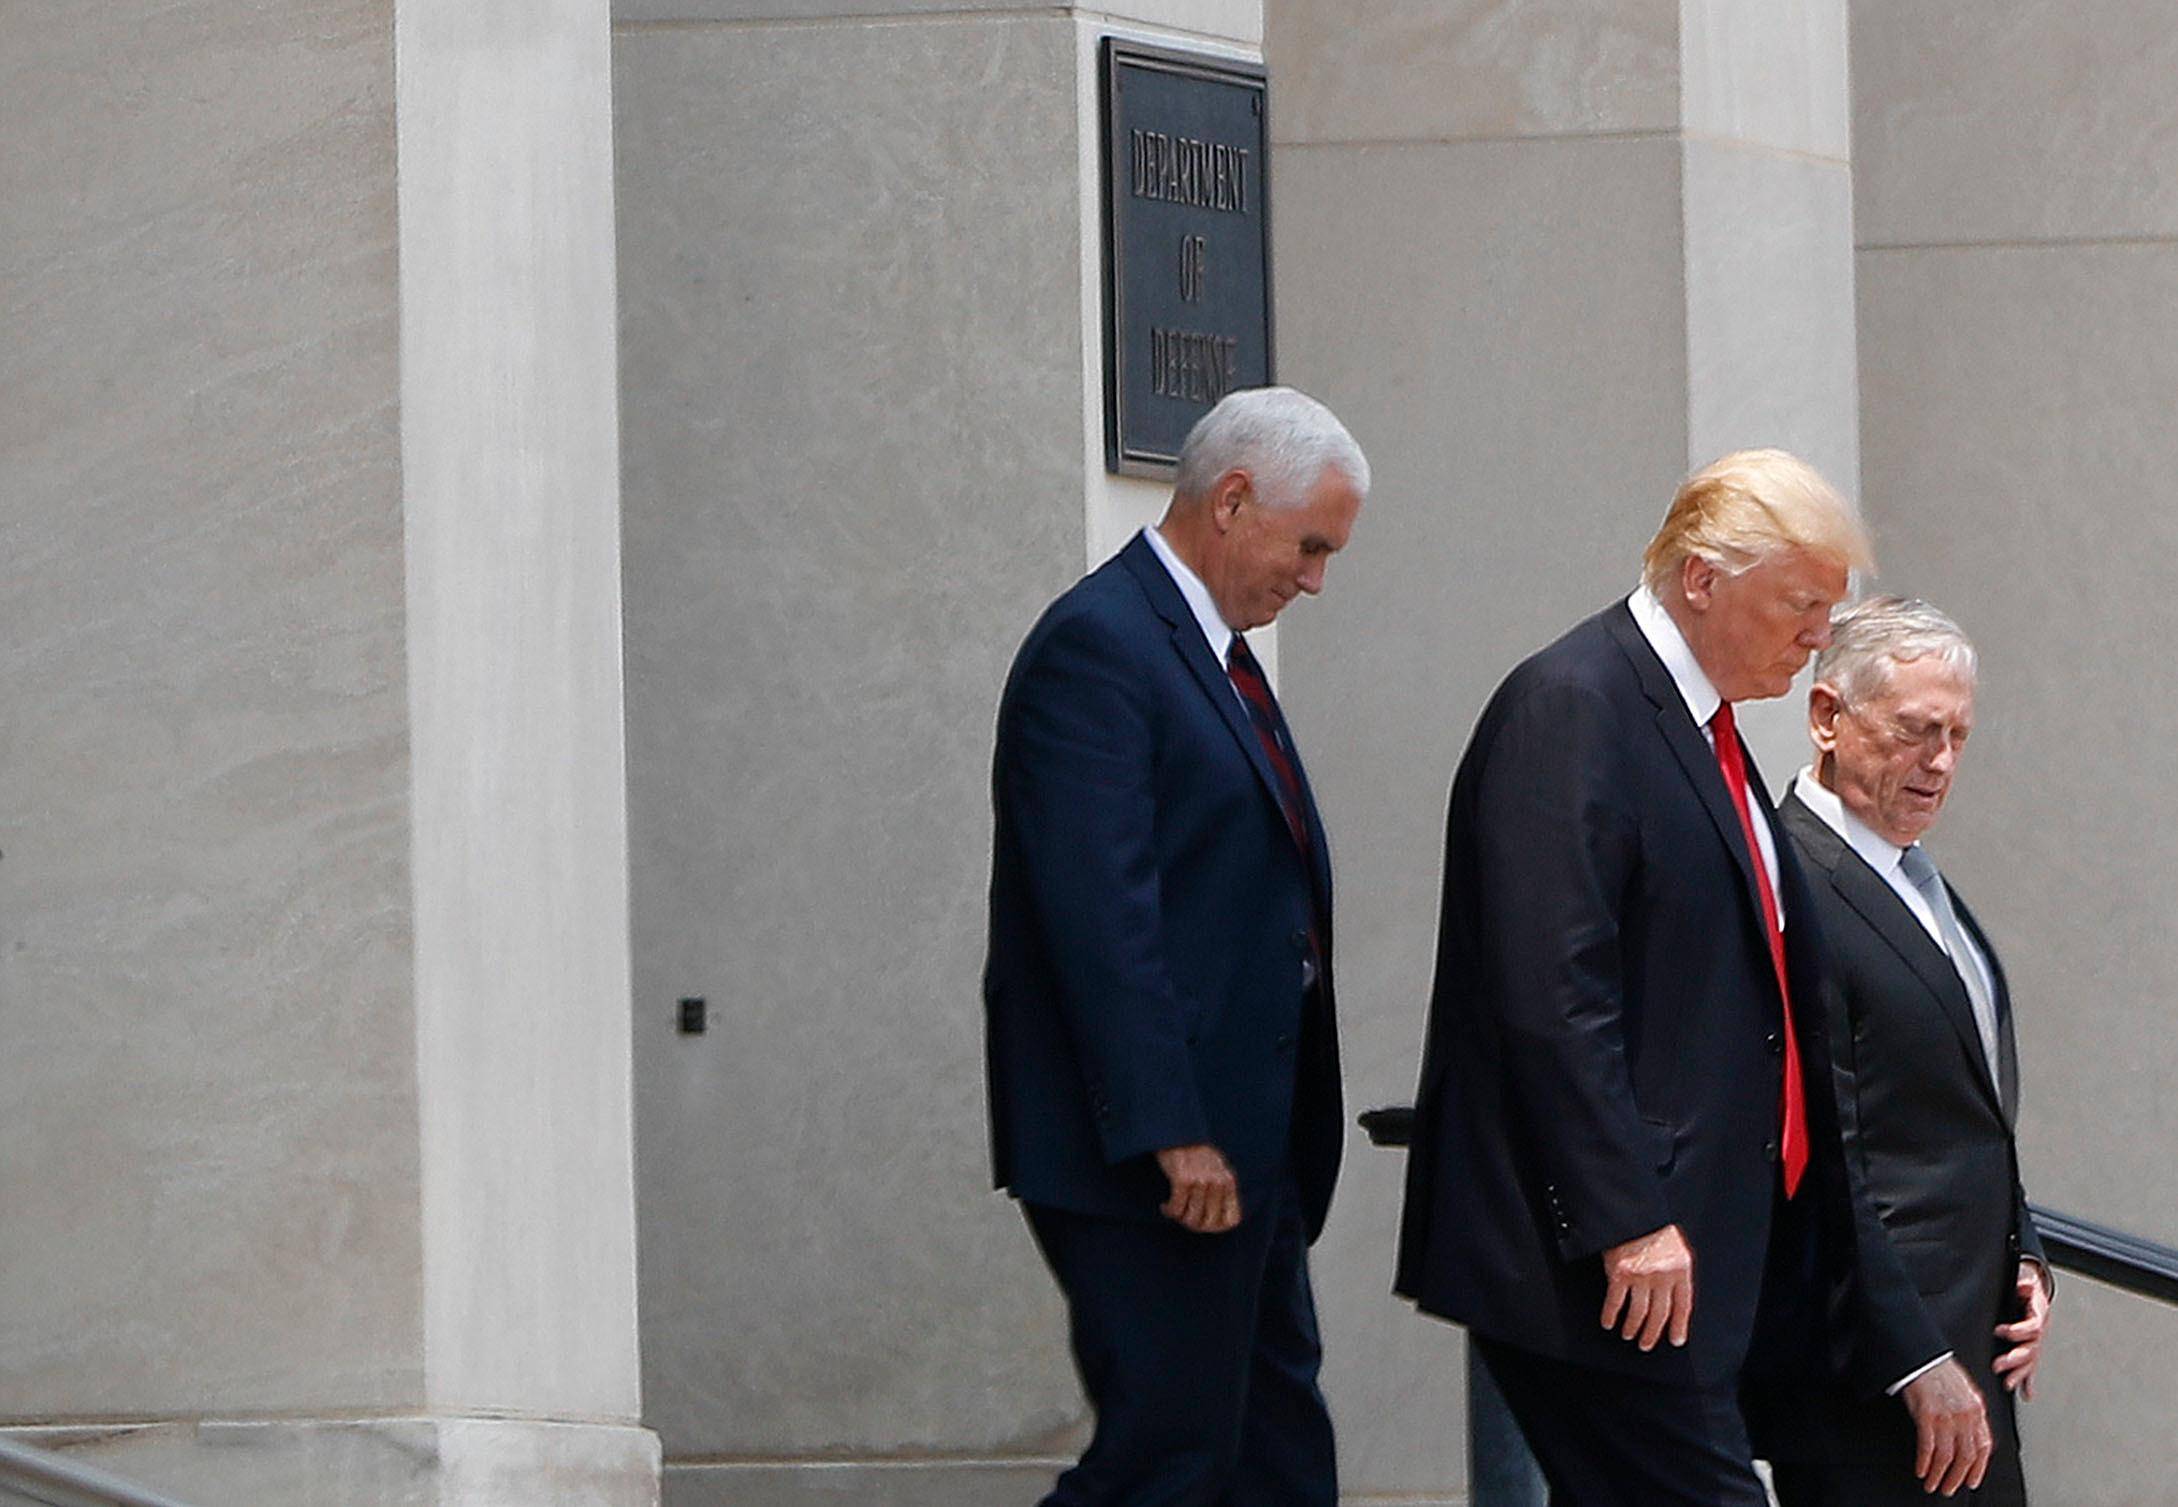 President Donald Trump and Vice President Mike Pence walk out with Defense Secretary Jim Mattis following Trump's visit to the Pentagon, Thursday, July 20, 2017. (AP Photo/Pablo Martinez Monsivais)